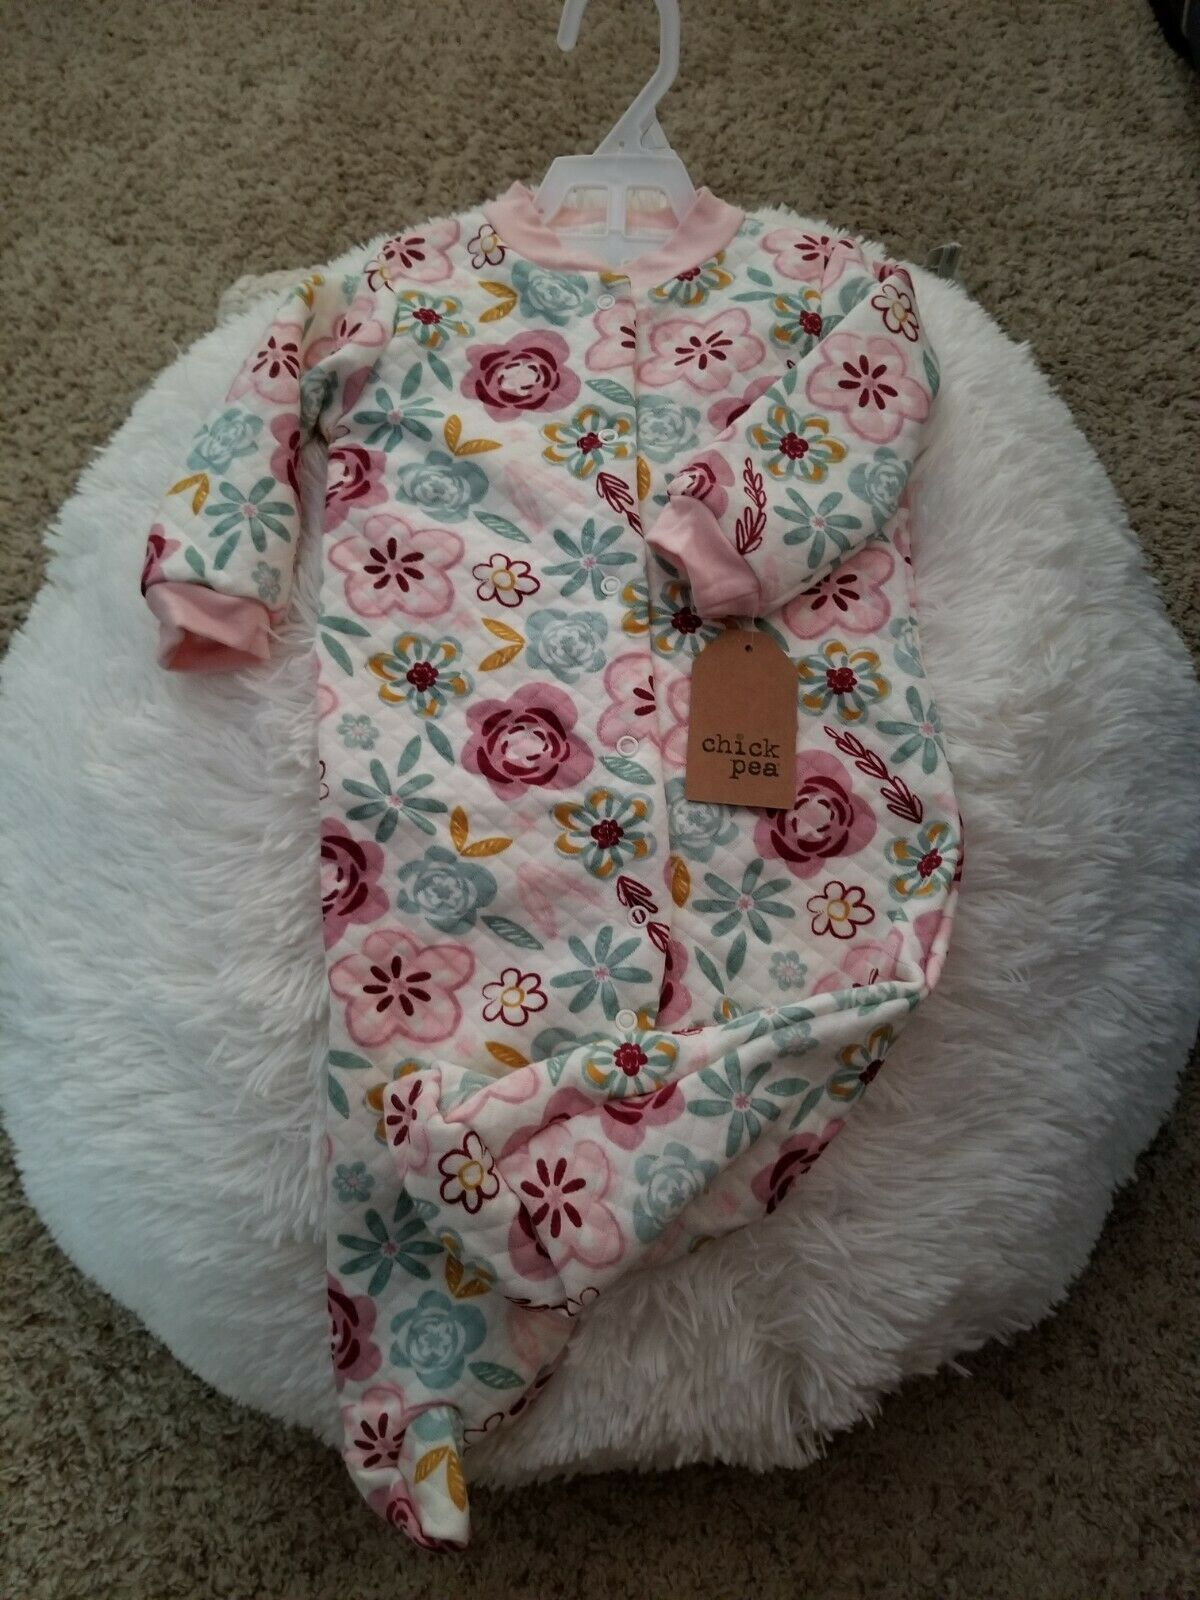 Baby Girls Clothes Outfit Fall Winter 6 9 Months Nwt FREE SHIPPING